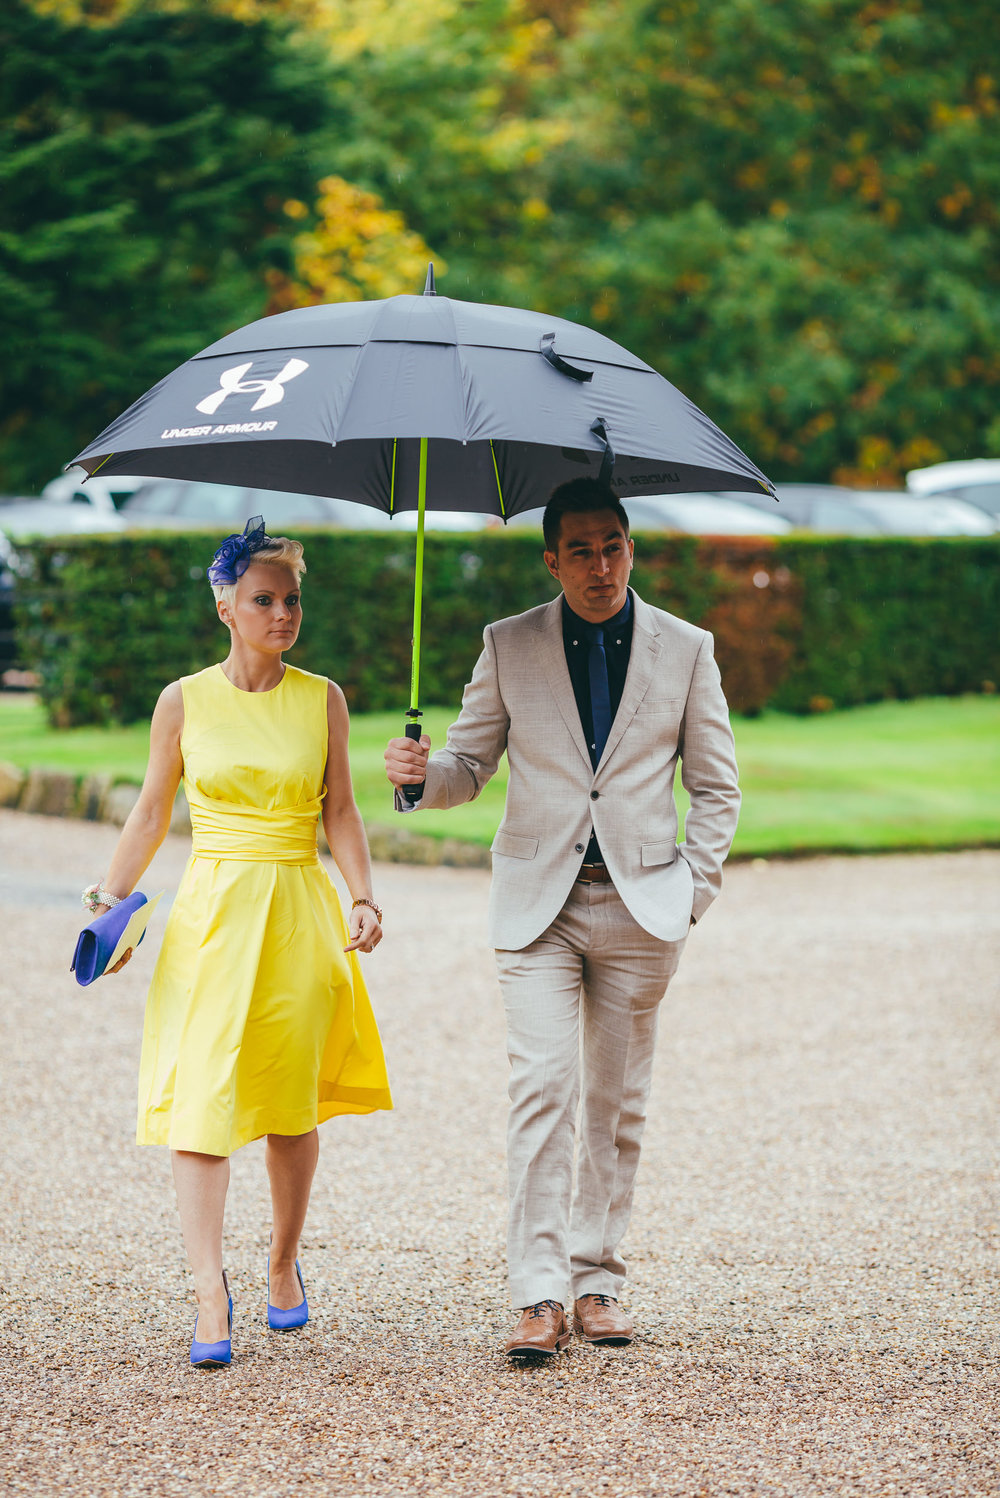 Wedding guests in the rain at Norwood Park